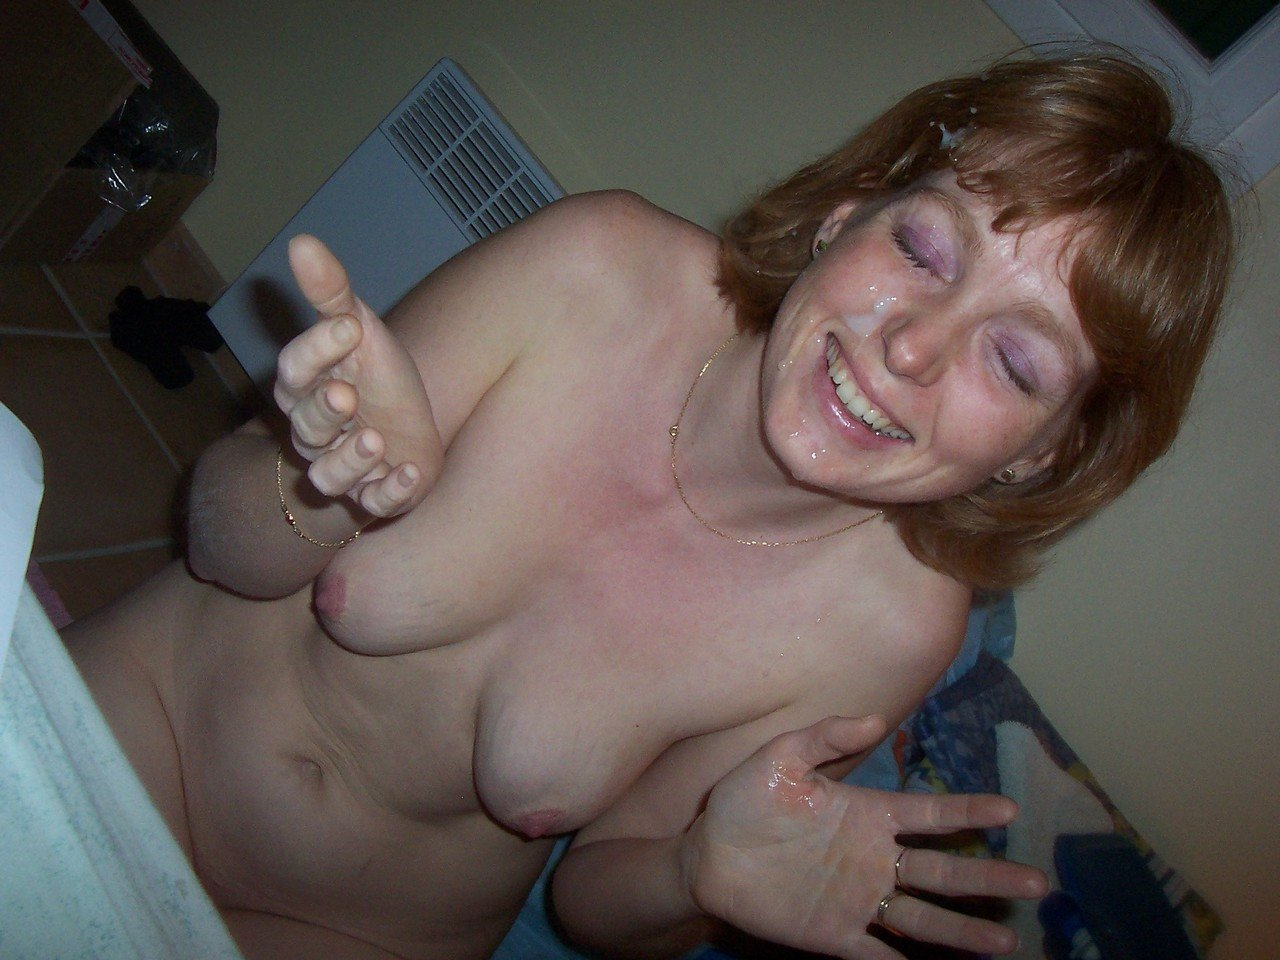 Amature mom cum swallower add photo